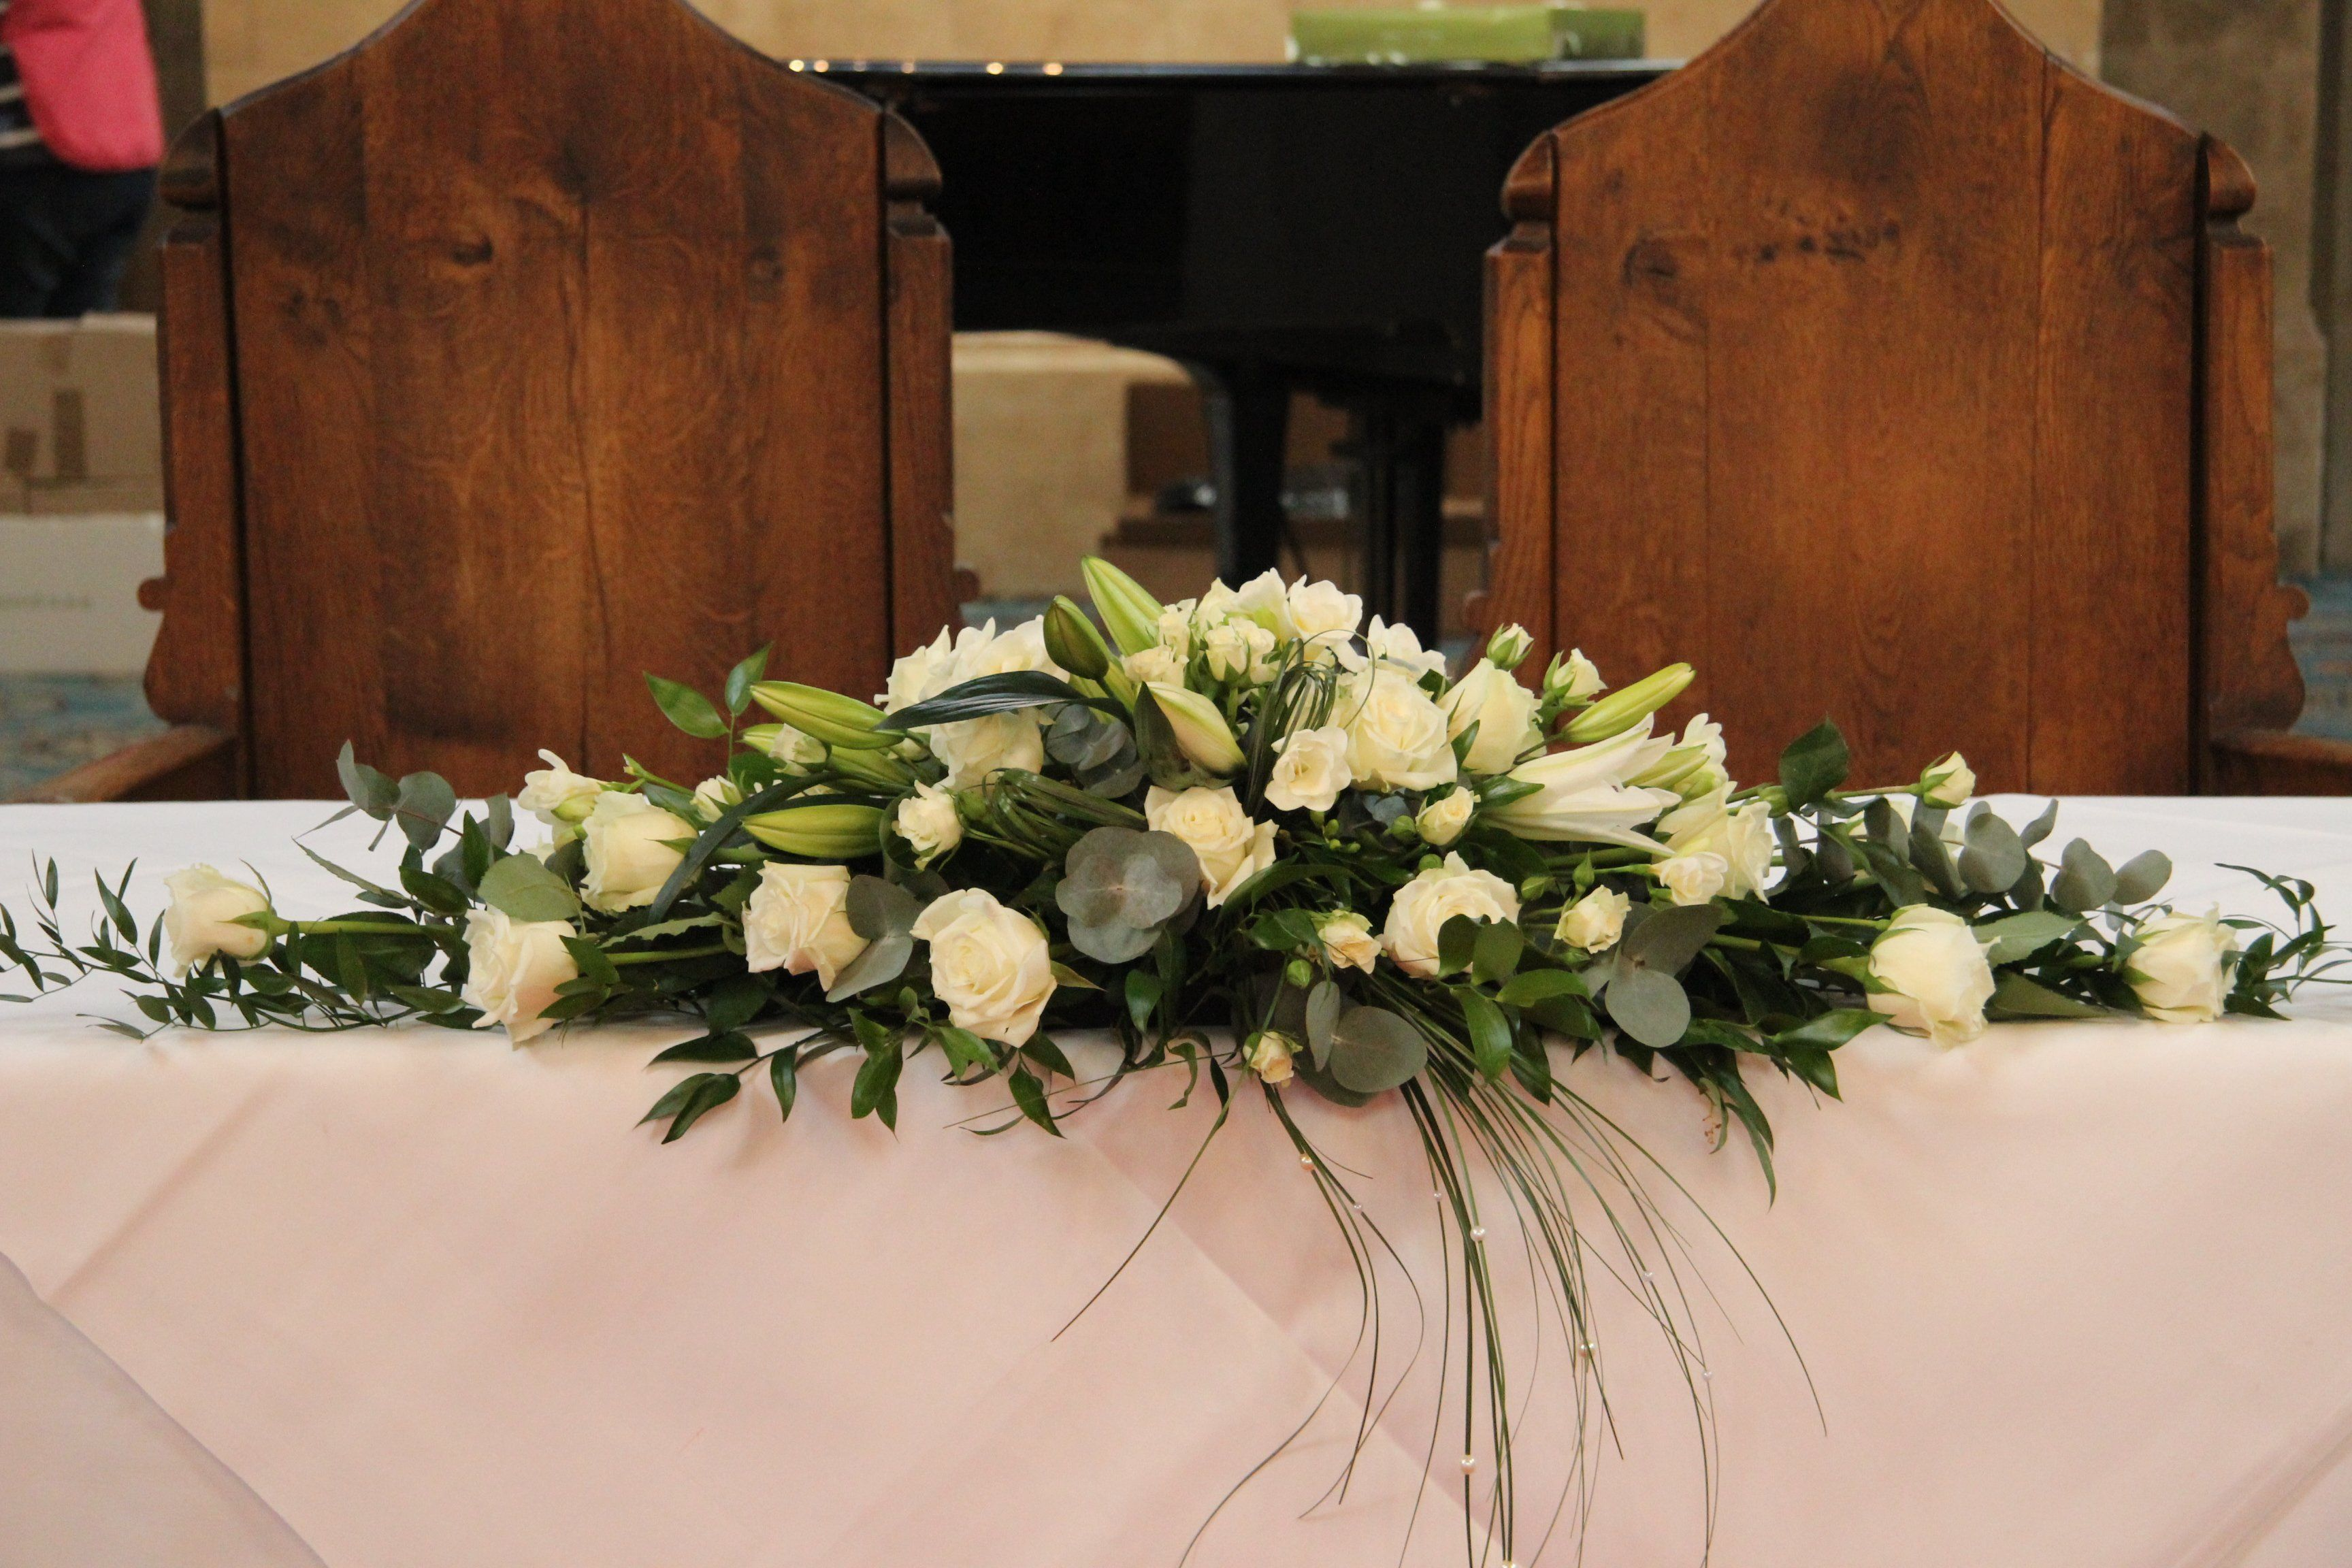 Top table flower arrangements for weddings google search for Table arrangements